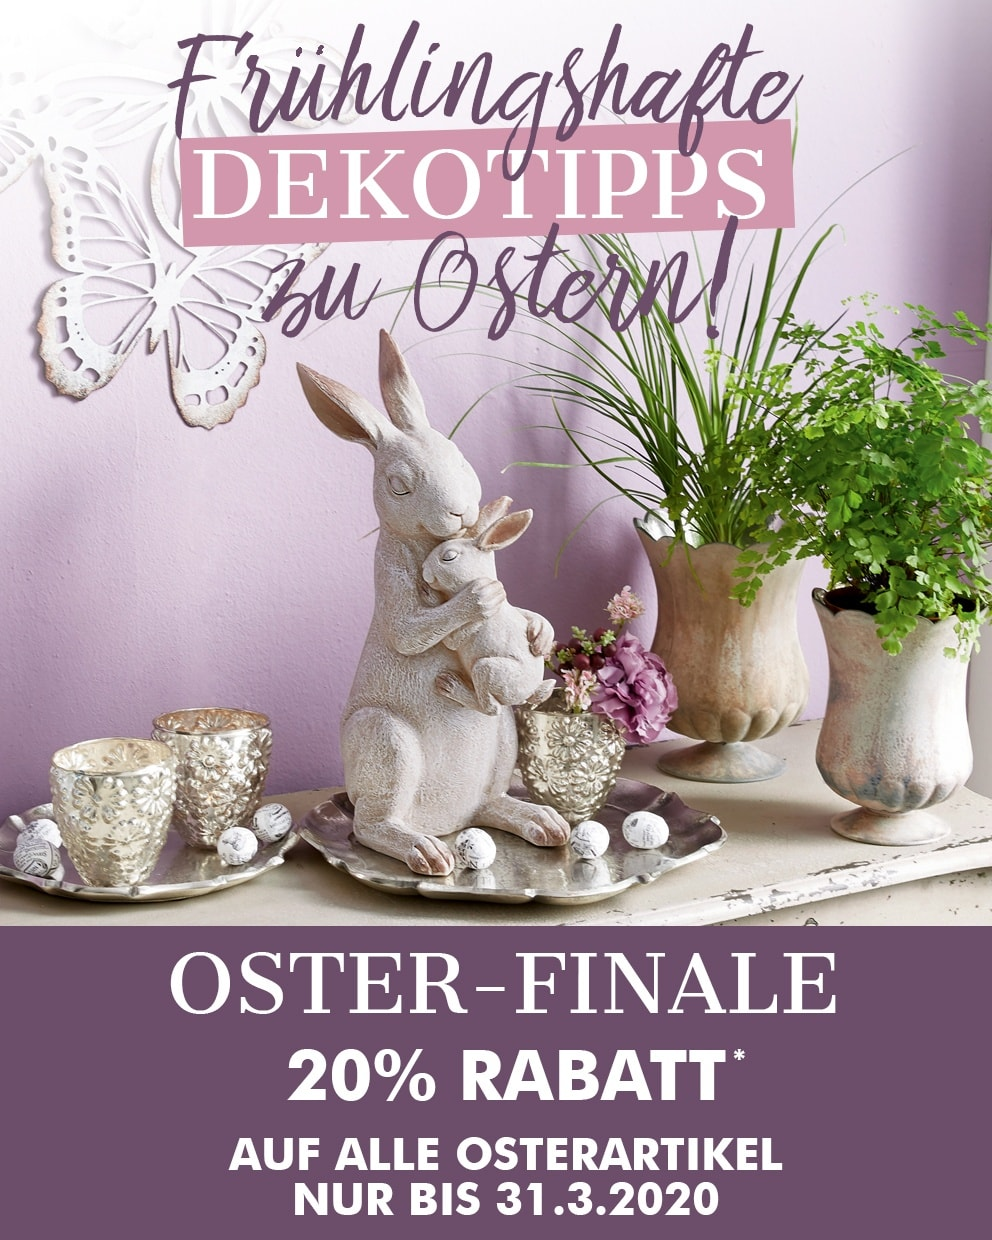 Osterfinale